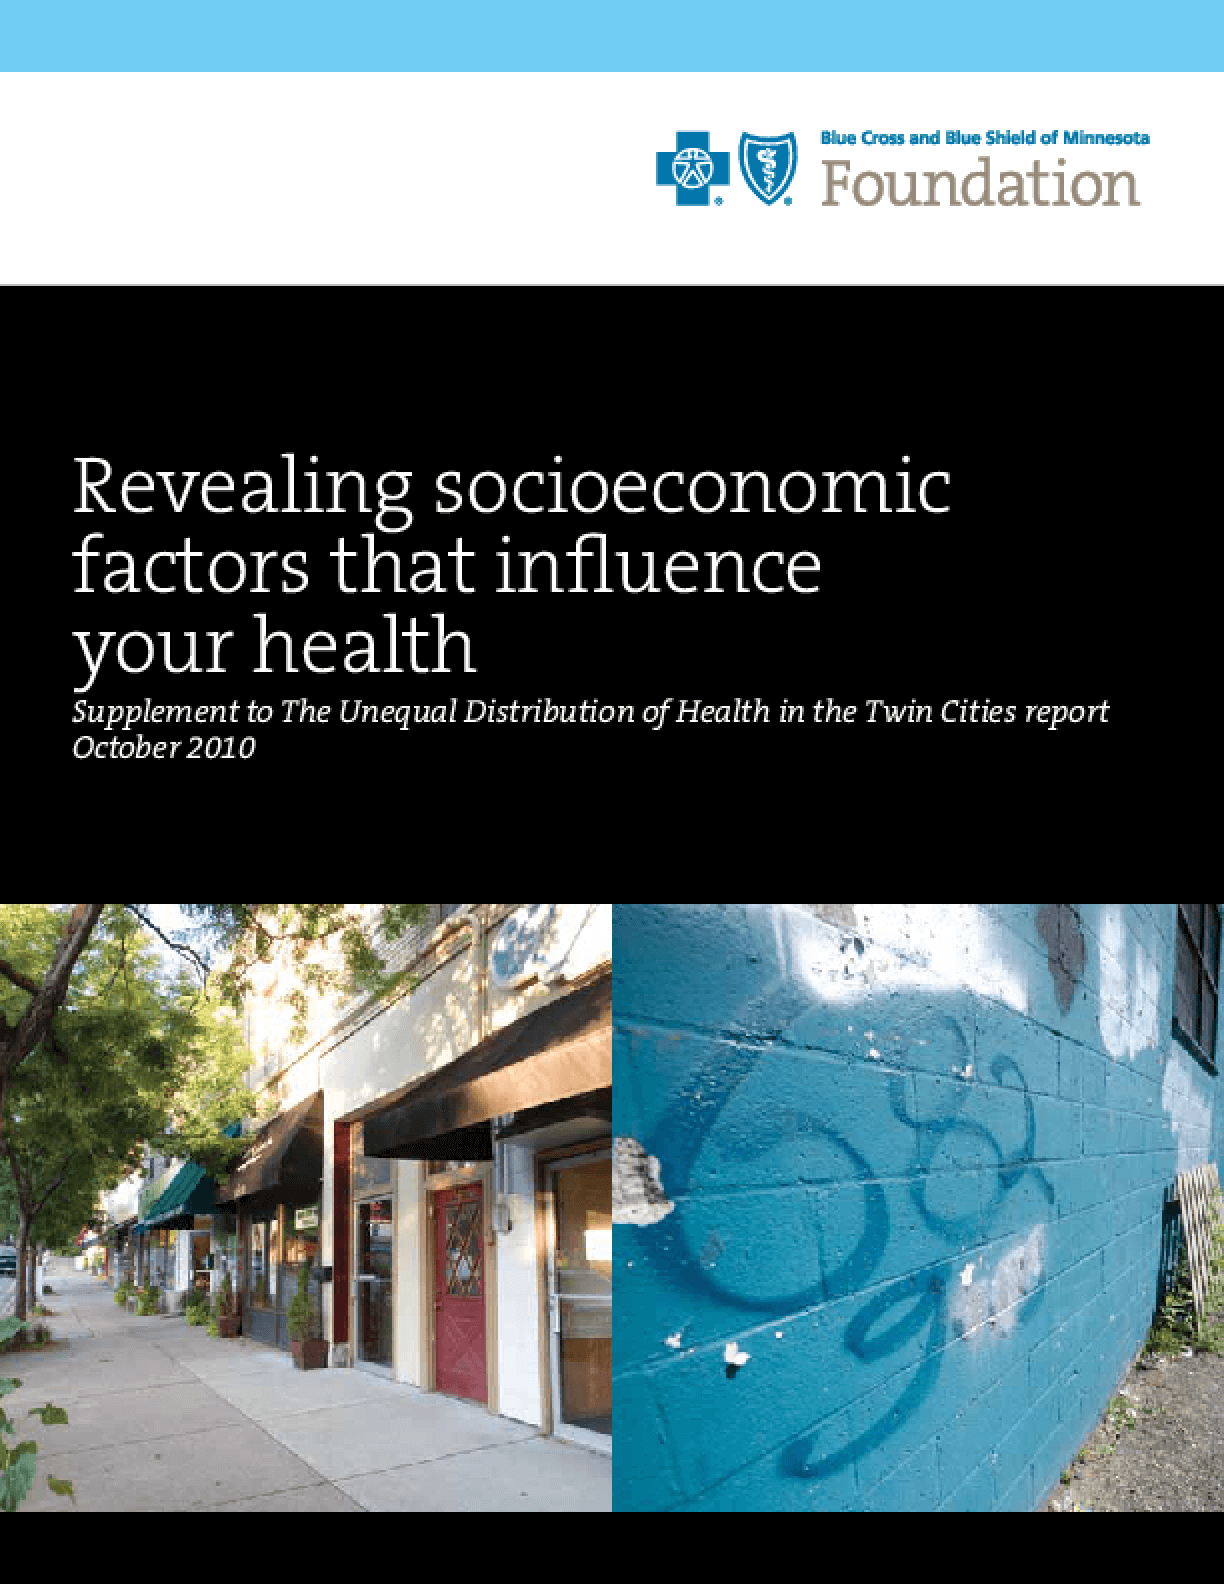 Revealing Socioeconomic Factors That Influence Your Health (supplement to the unequal distribution of health in the Twin Cities report)